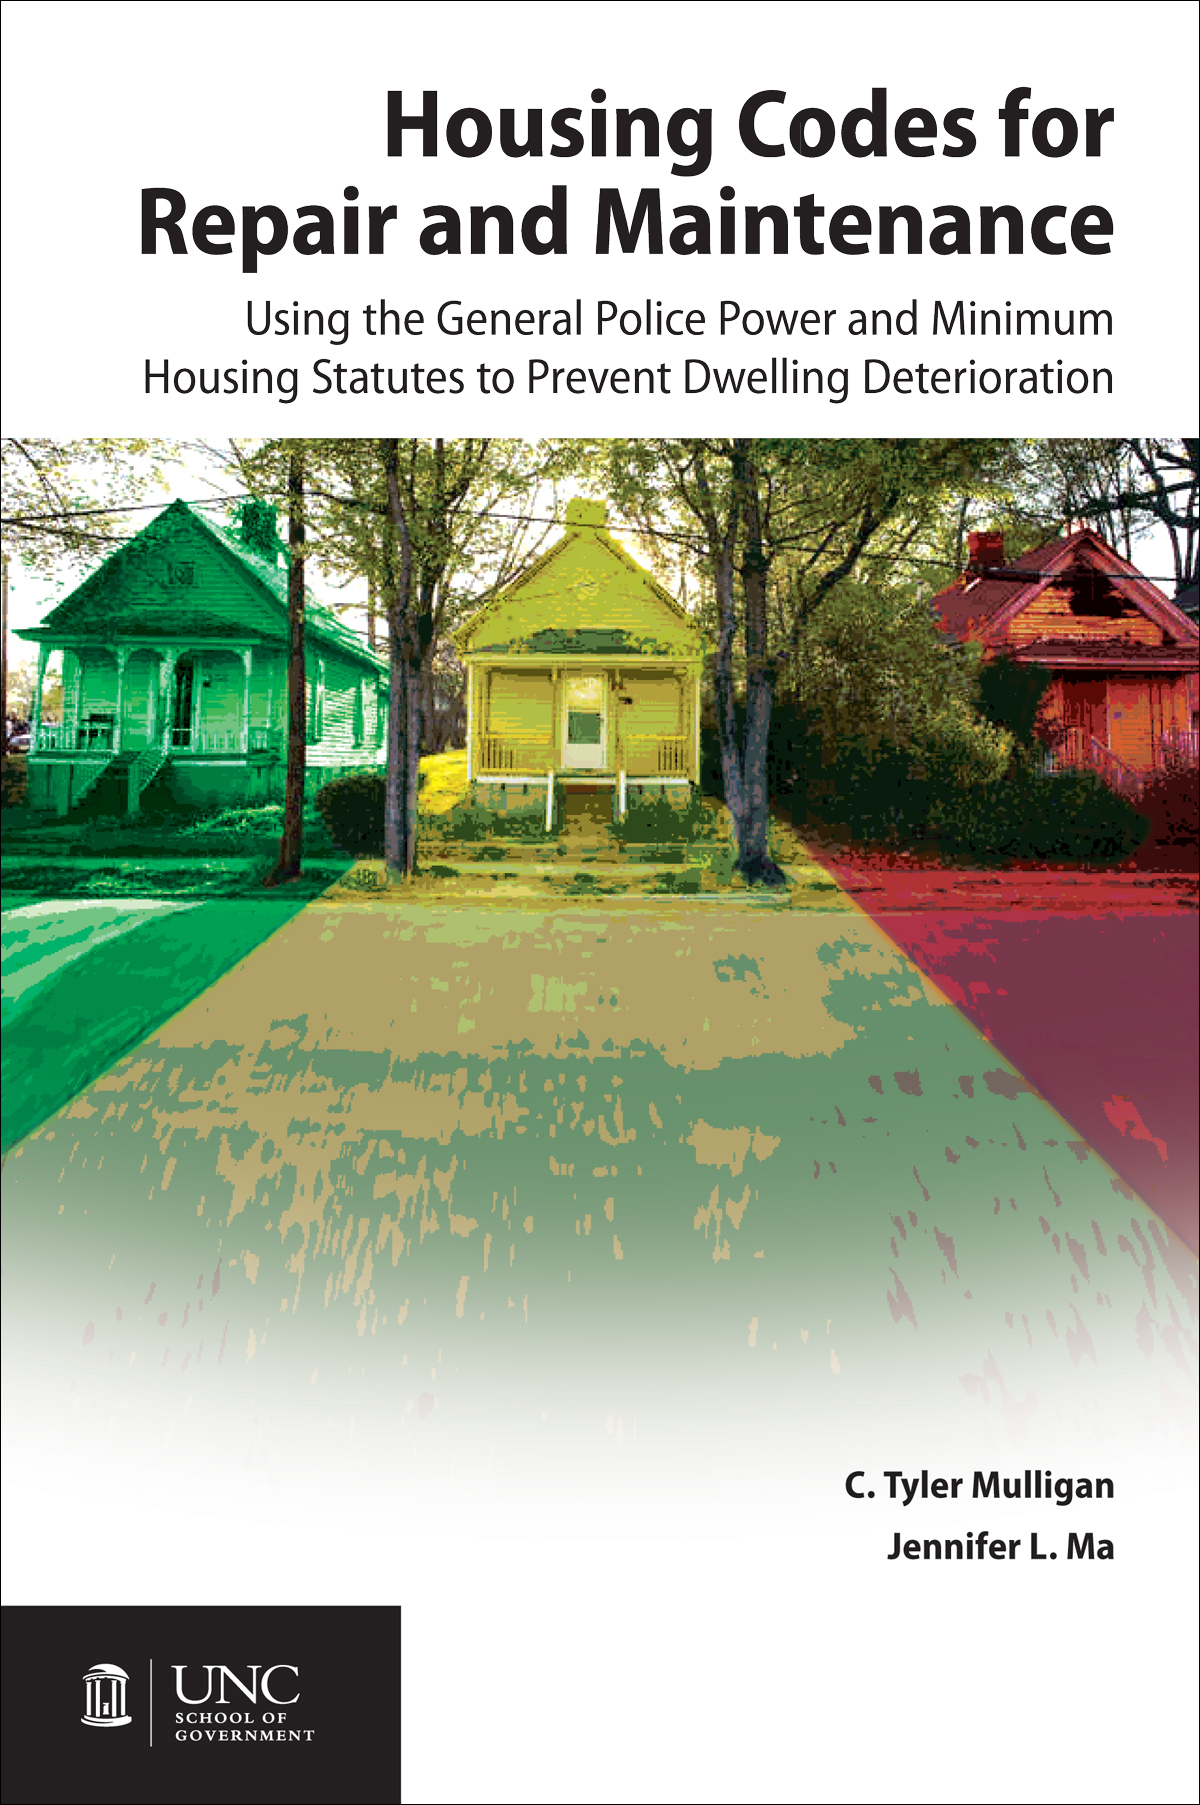 Housing Codes for Repair and Maintenance: Using the General Police Power and Minimum Housing Statutes to Prevent Dwelling Deterioration: Package of Hard Copy and PDF Editions